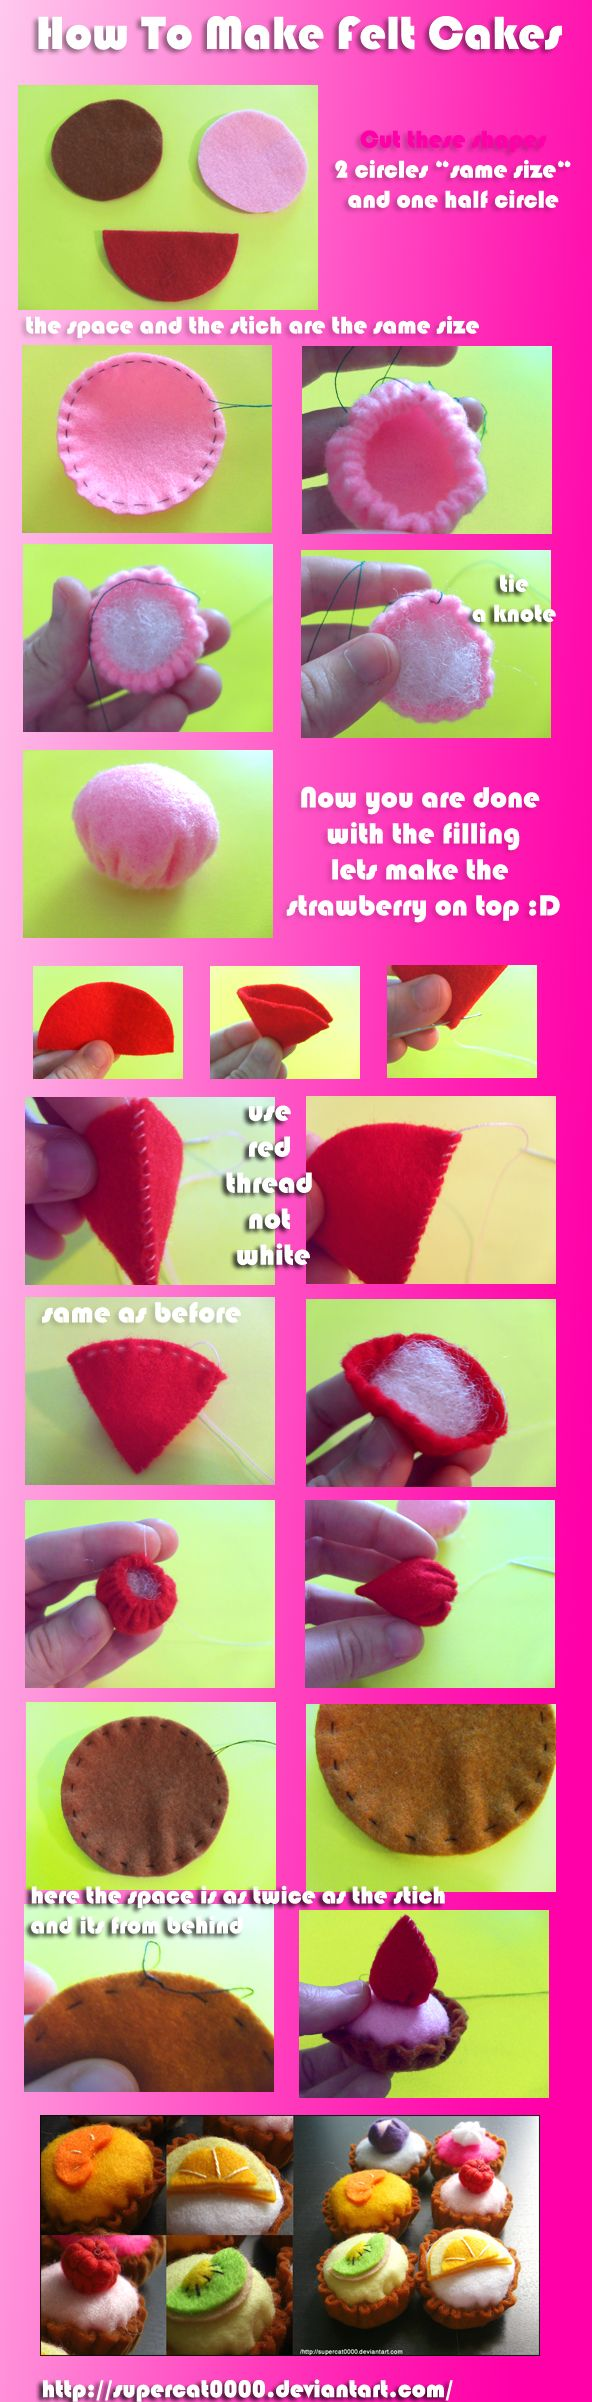 Image detail for -How to make felt cakes by ~SuperCat0000 on deviantART